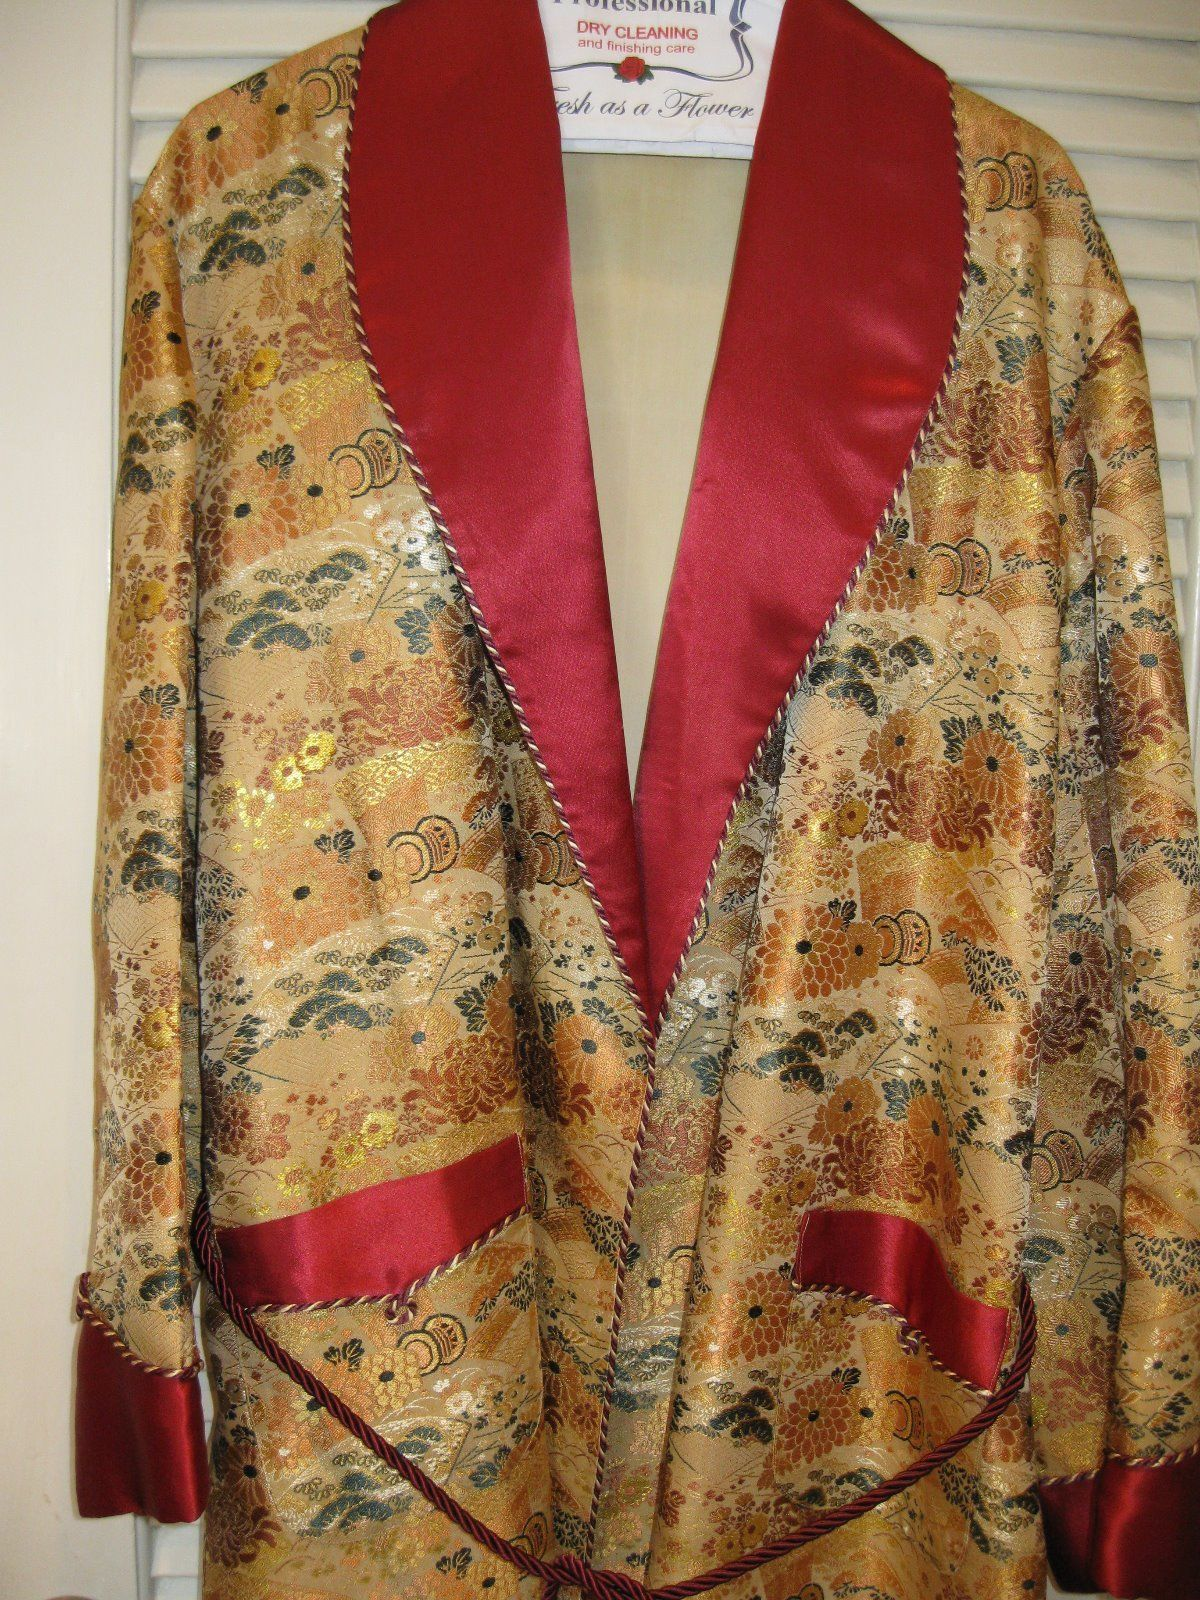 95 99 Vintage Japanese Mens Dressing Gown Robe Brocade